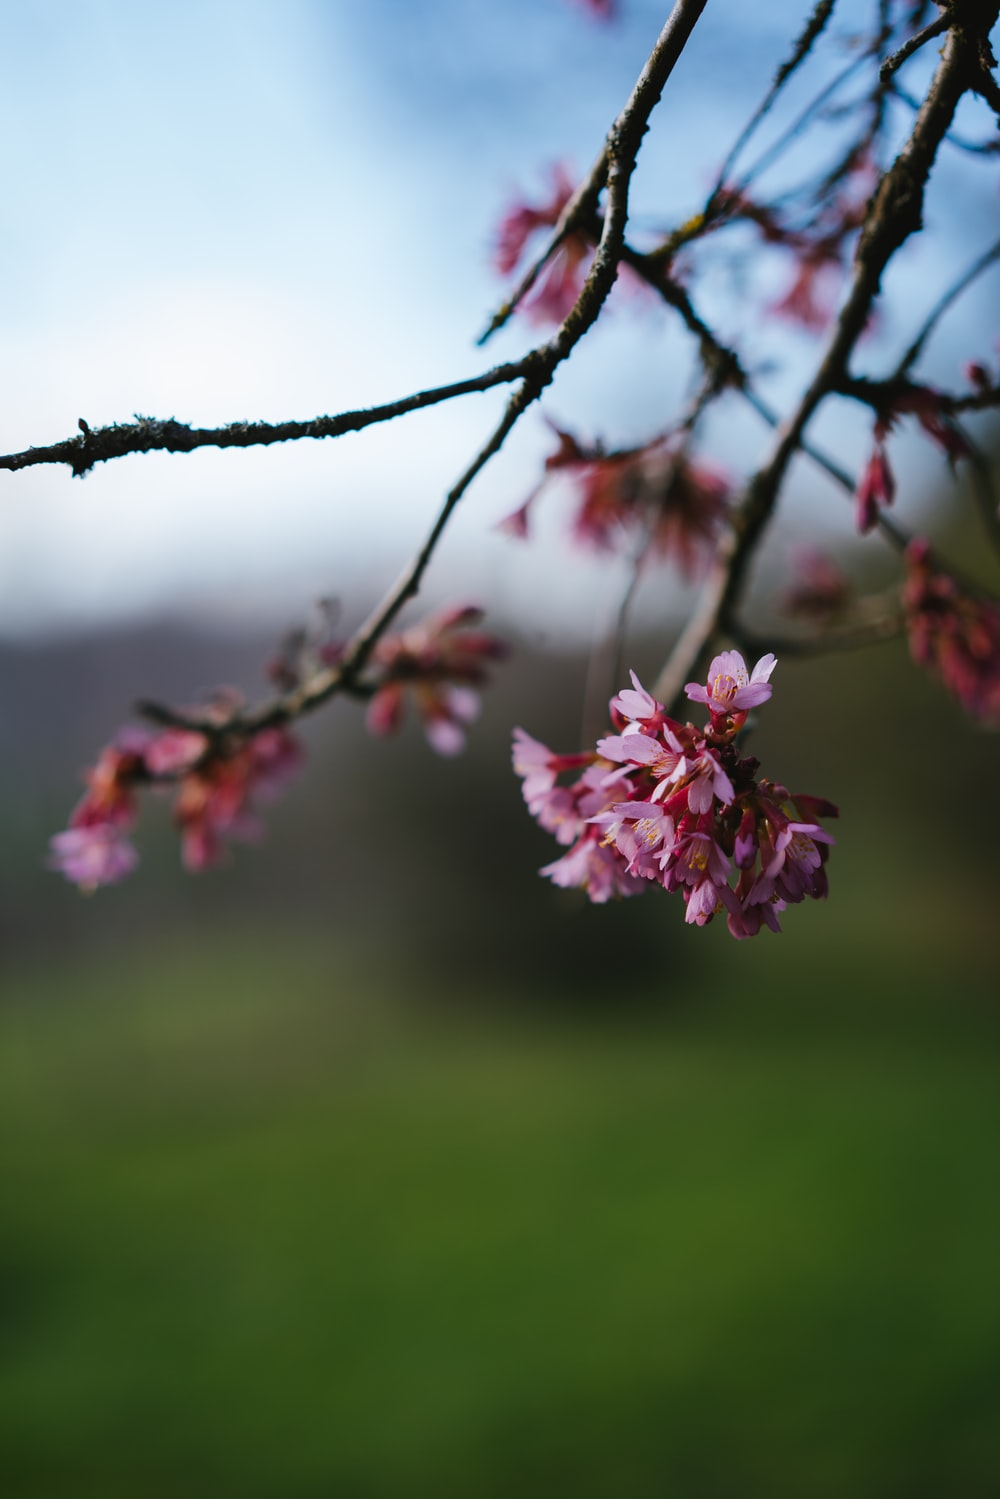 pink flower on brown tree branch